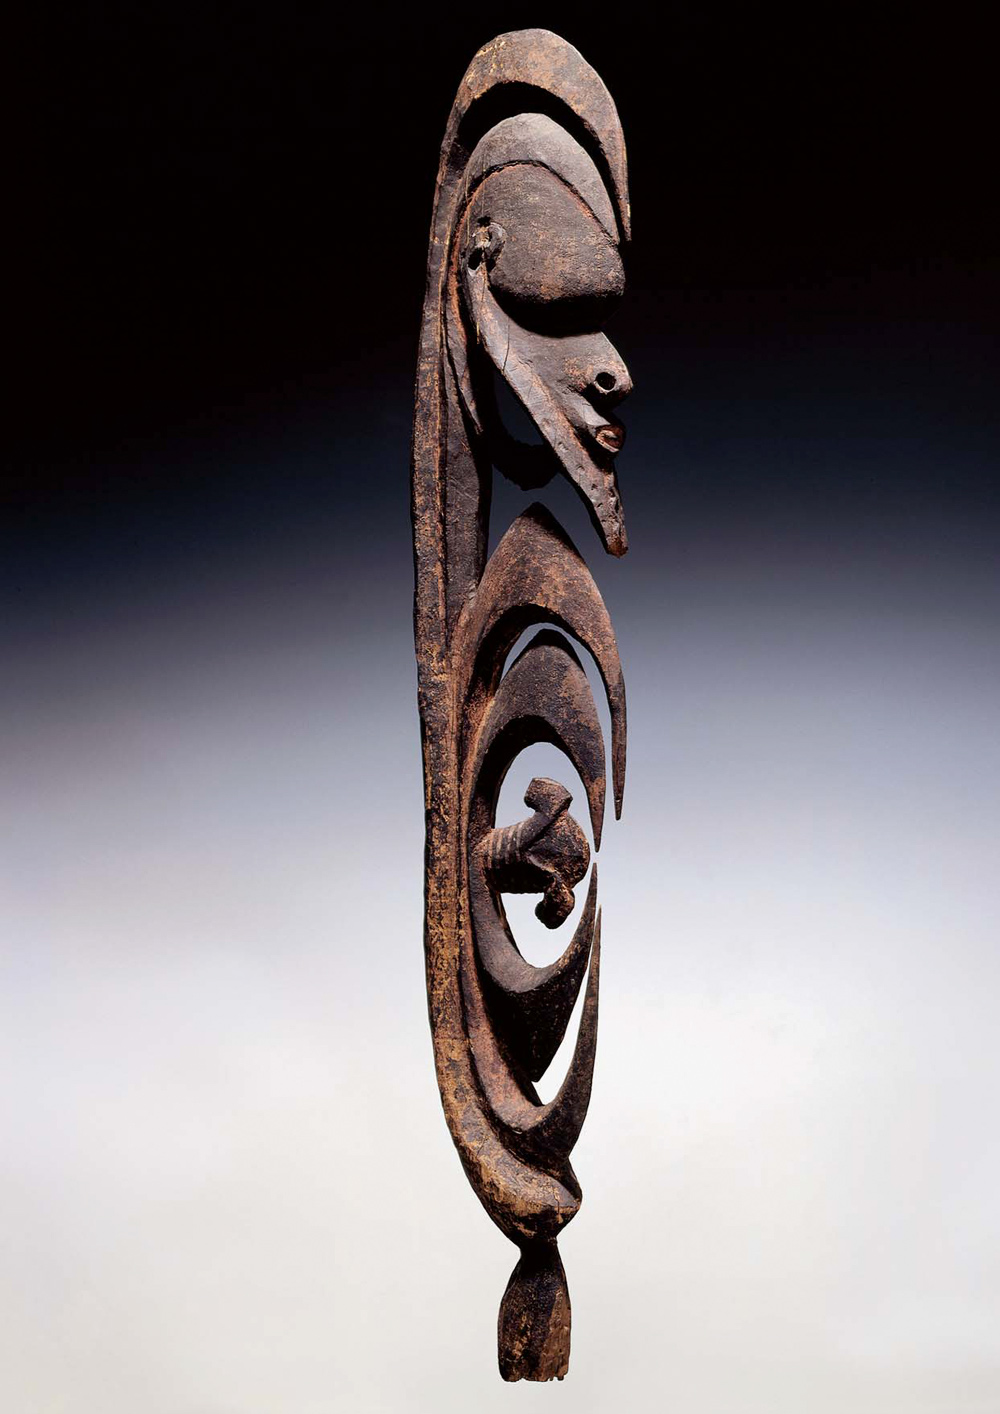 Michael Hamson Publications | The Elegance of Menace: Aesthetics of New Guinea Art